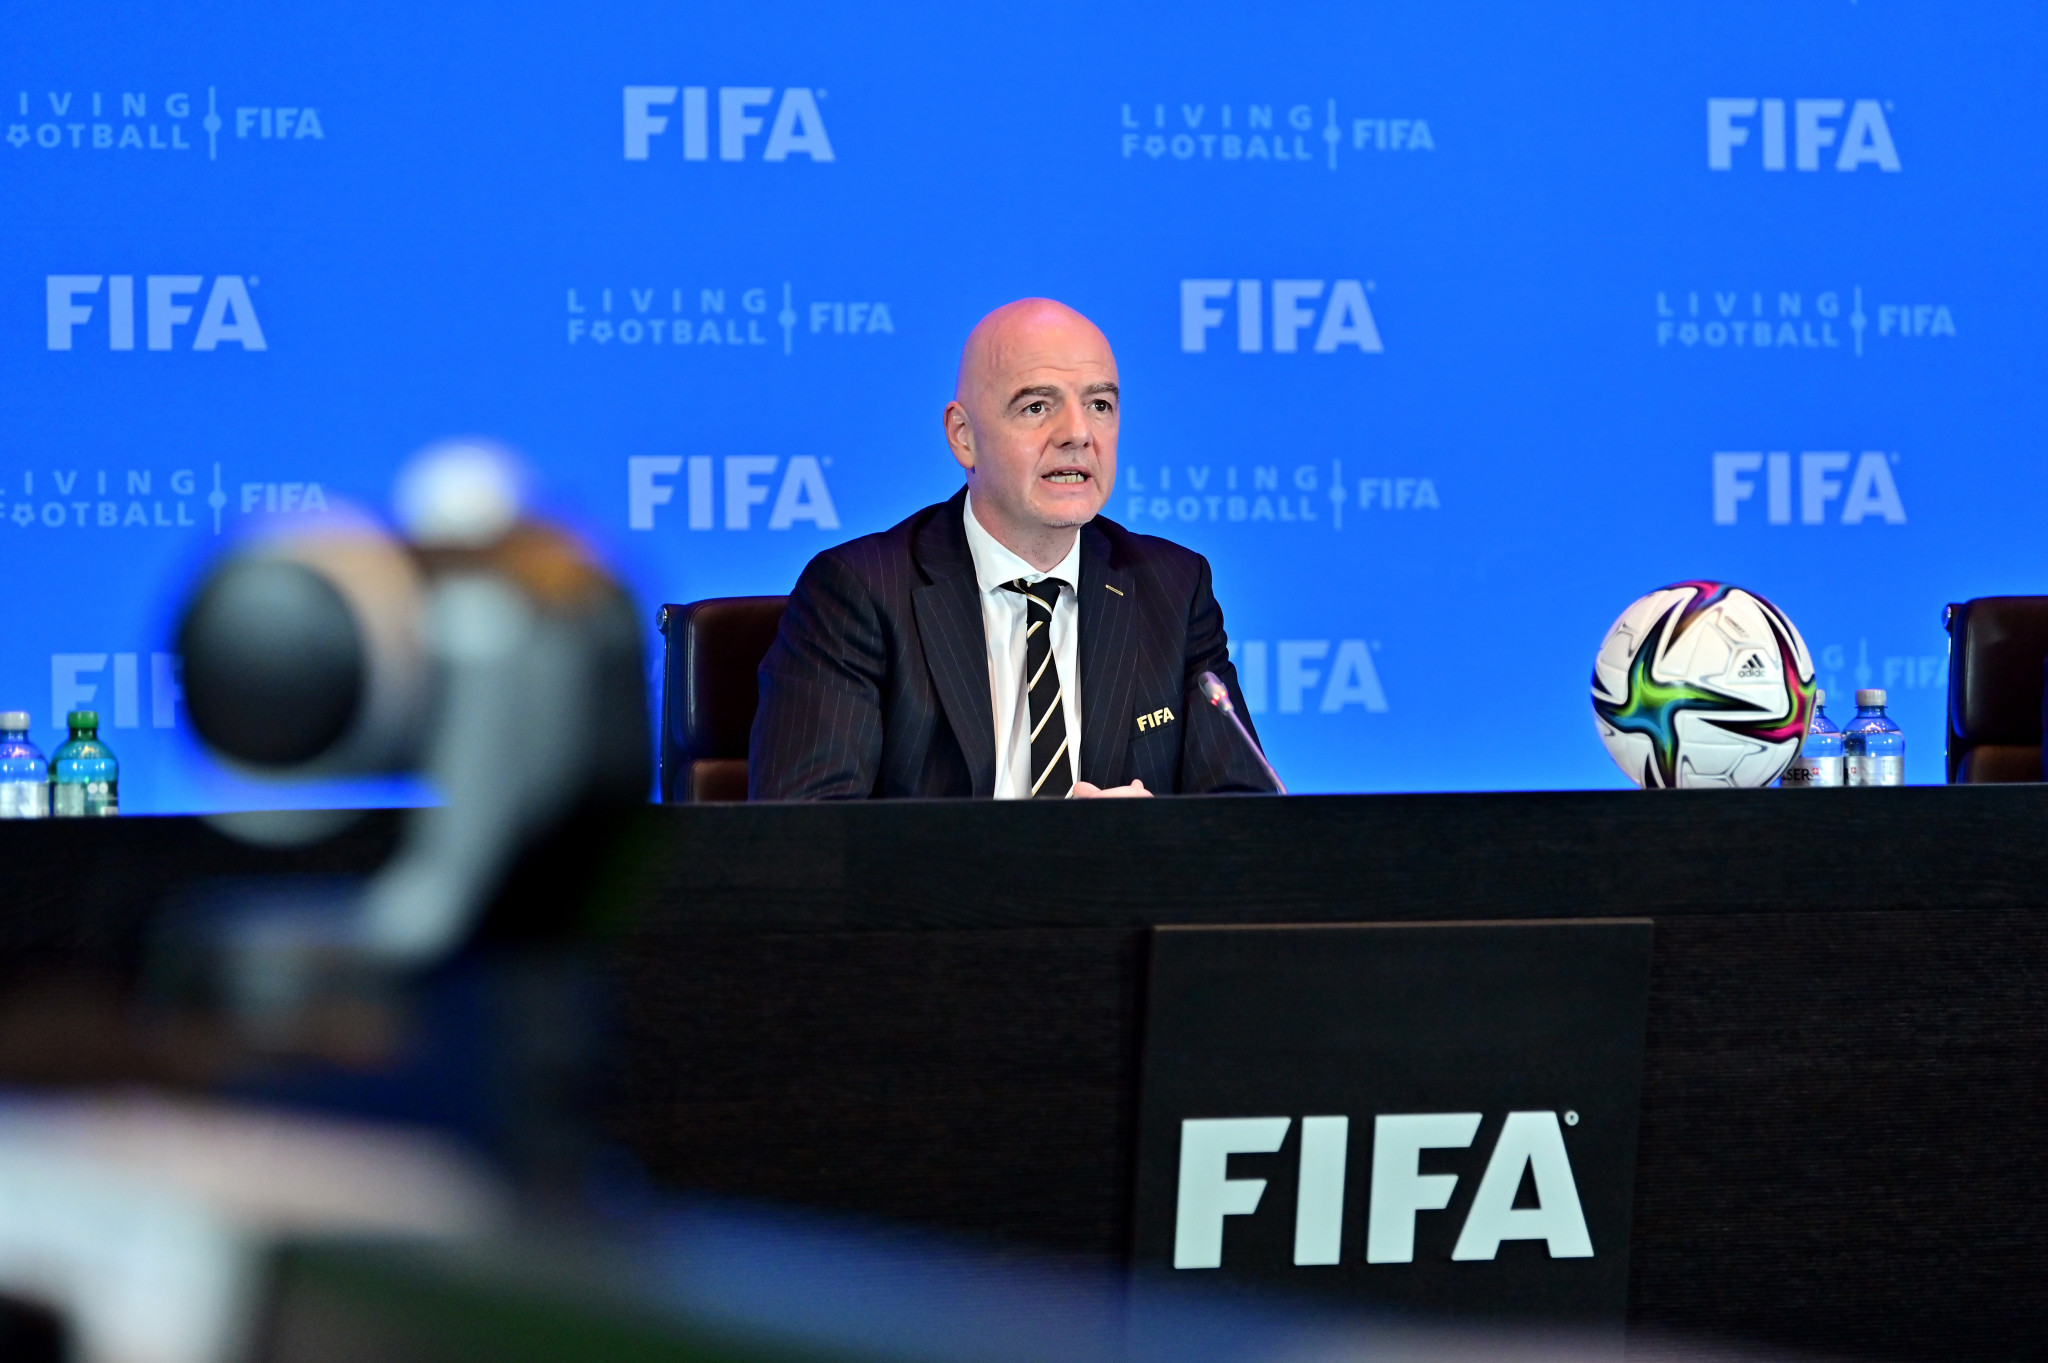 US Department of Justice awards $201 million to FIFA Foundation from former officials prosecuted for corruption